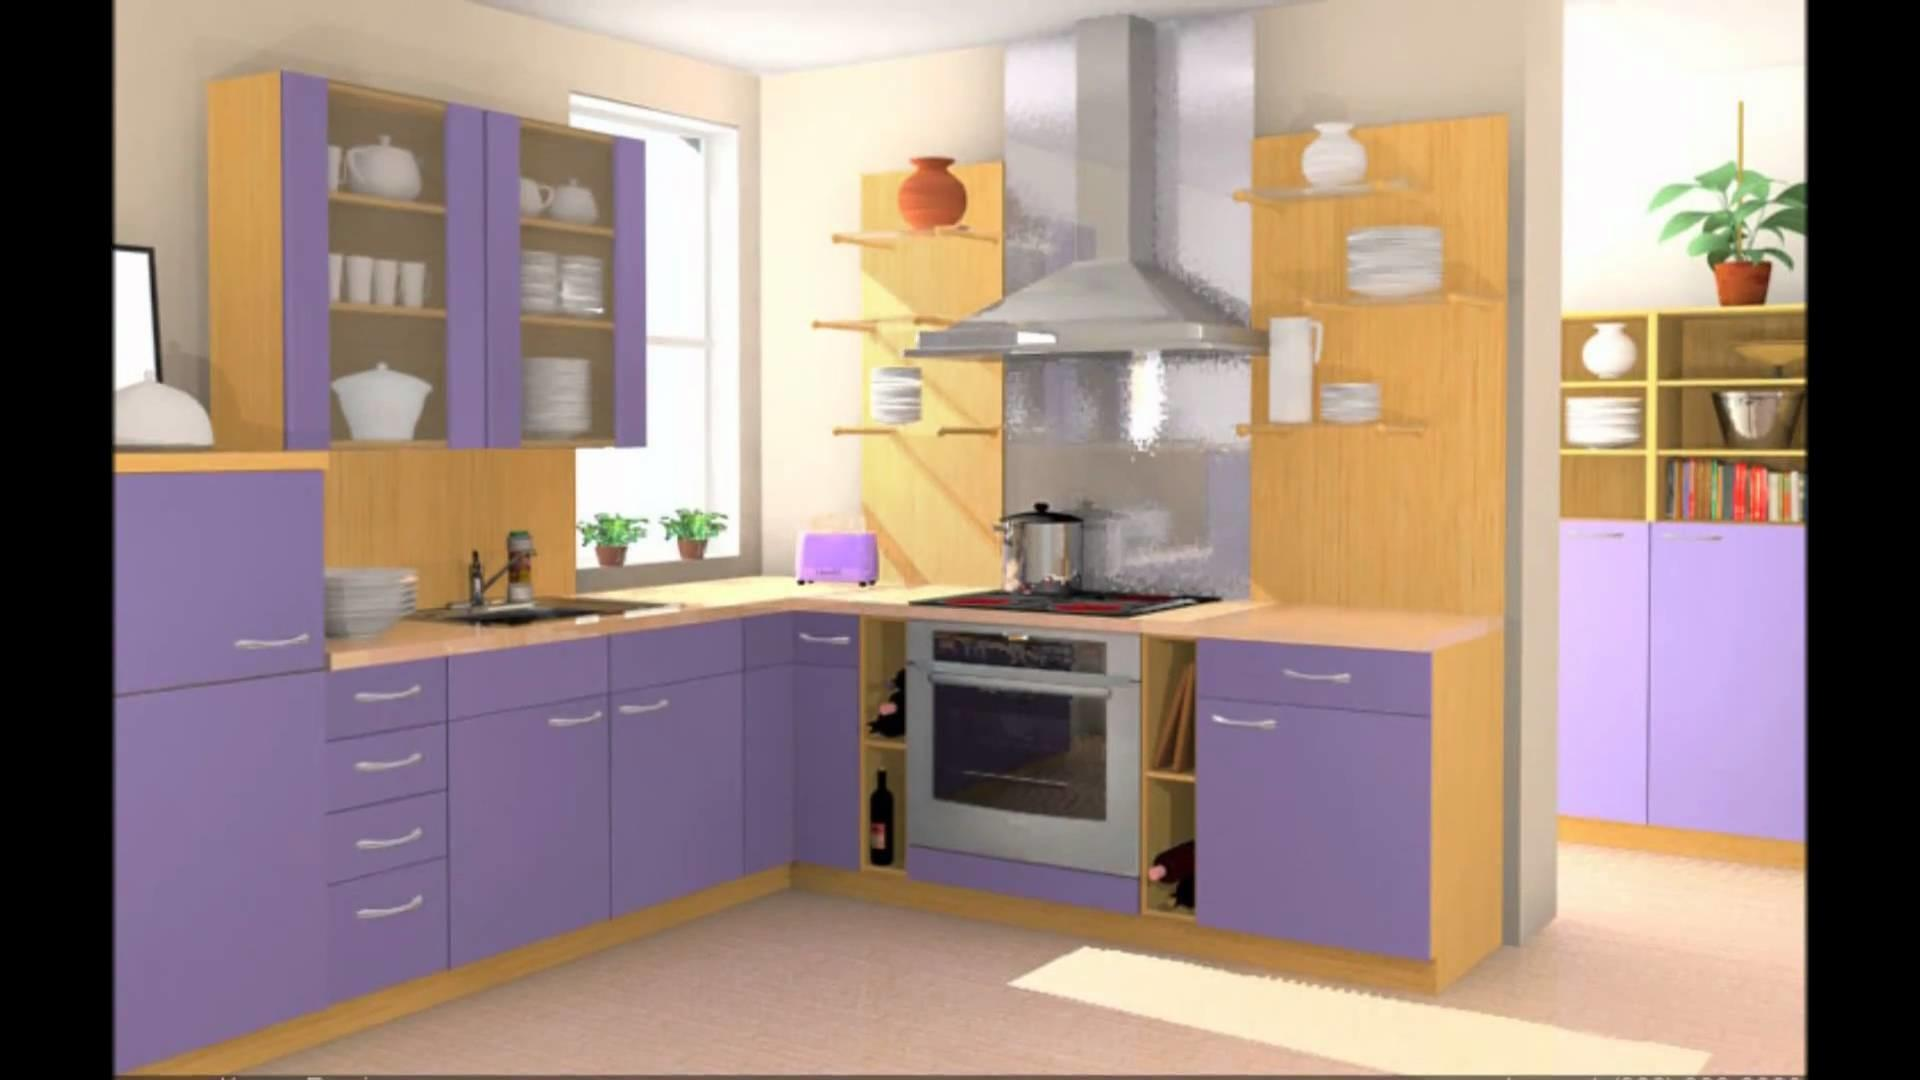 Kitchen Room Trends 2018 Small Ideas